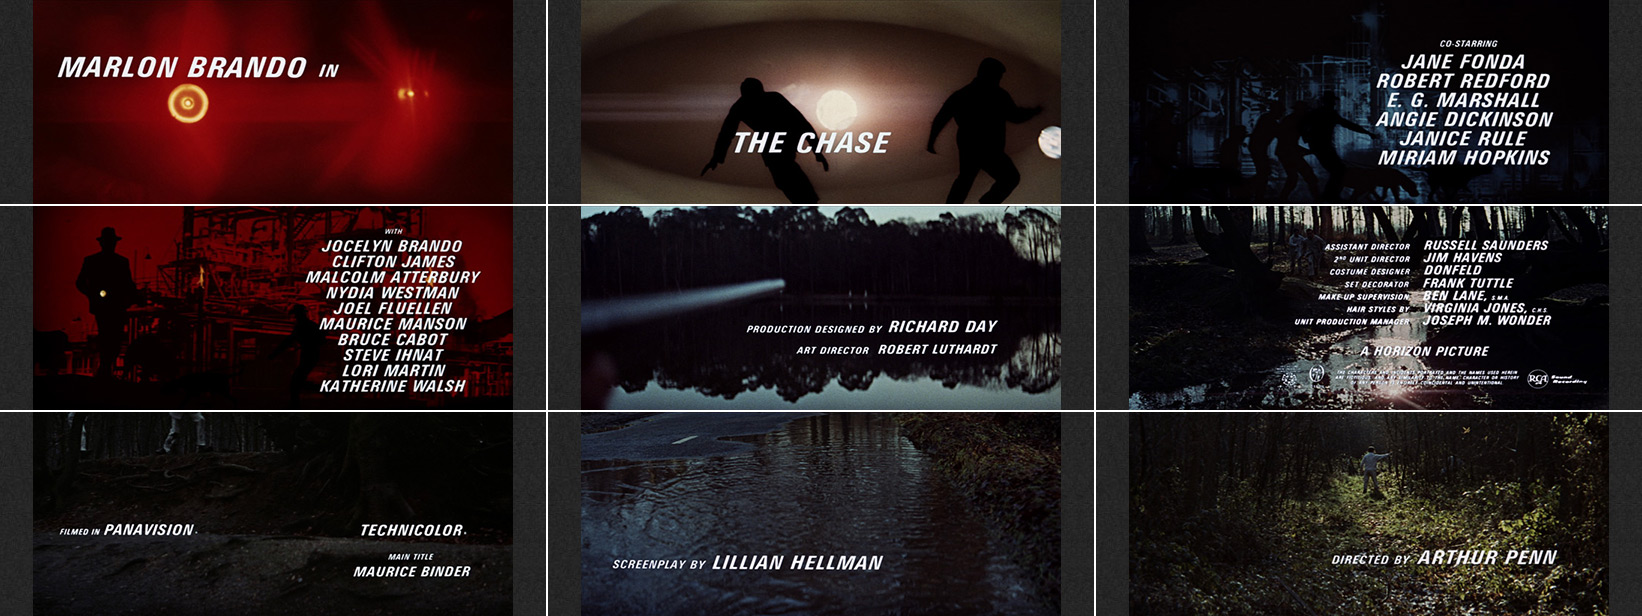 The Chase (1966) Maurice Binder - title sequence